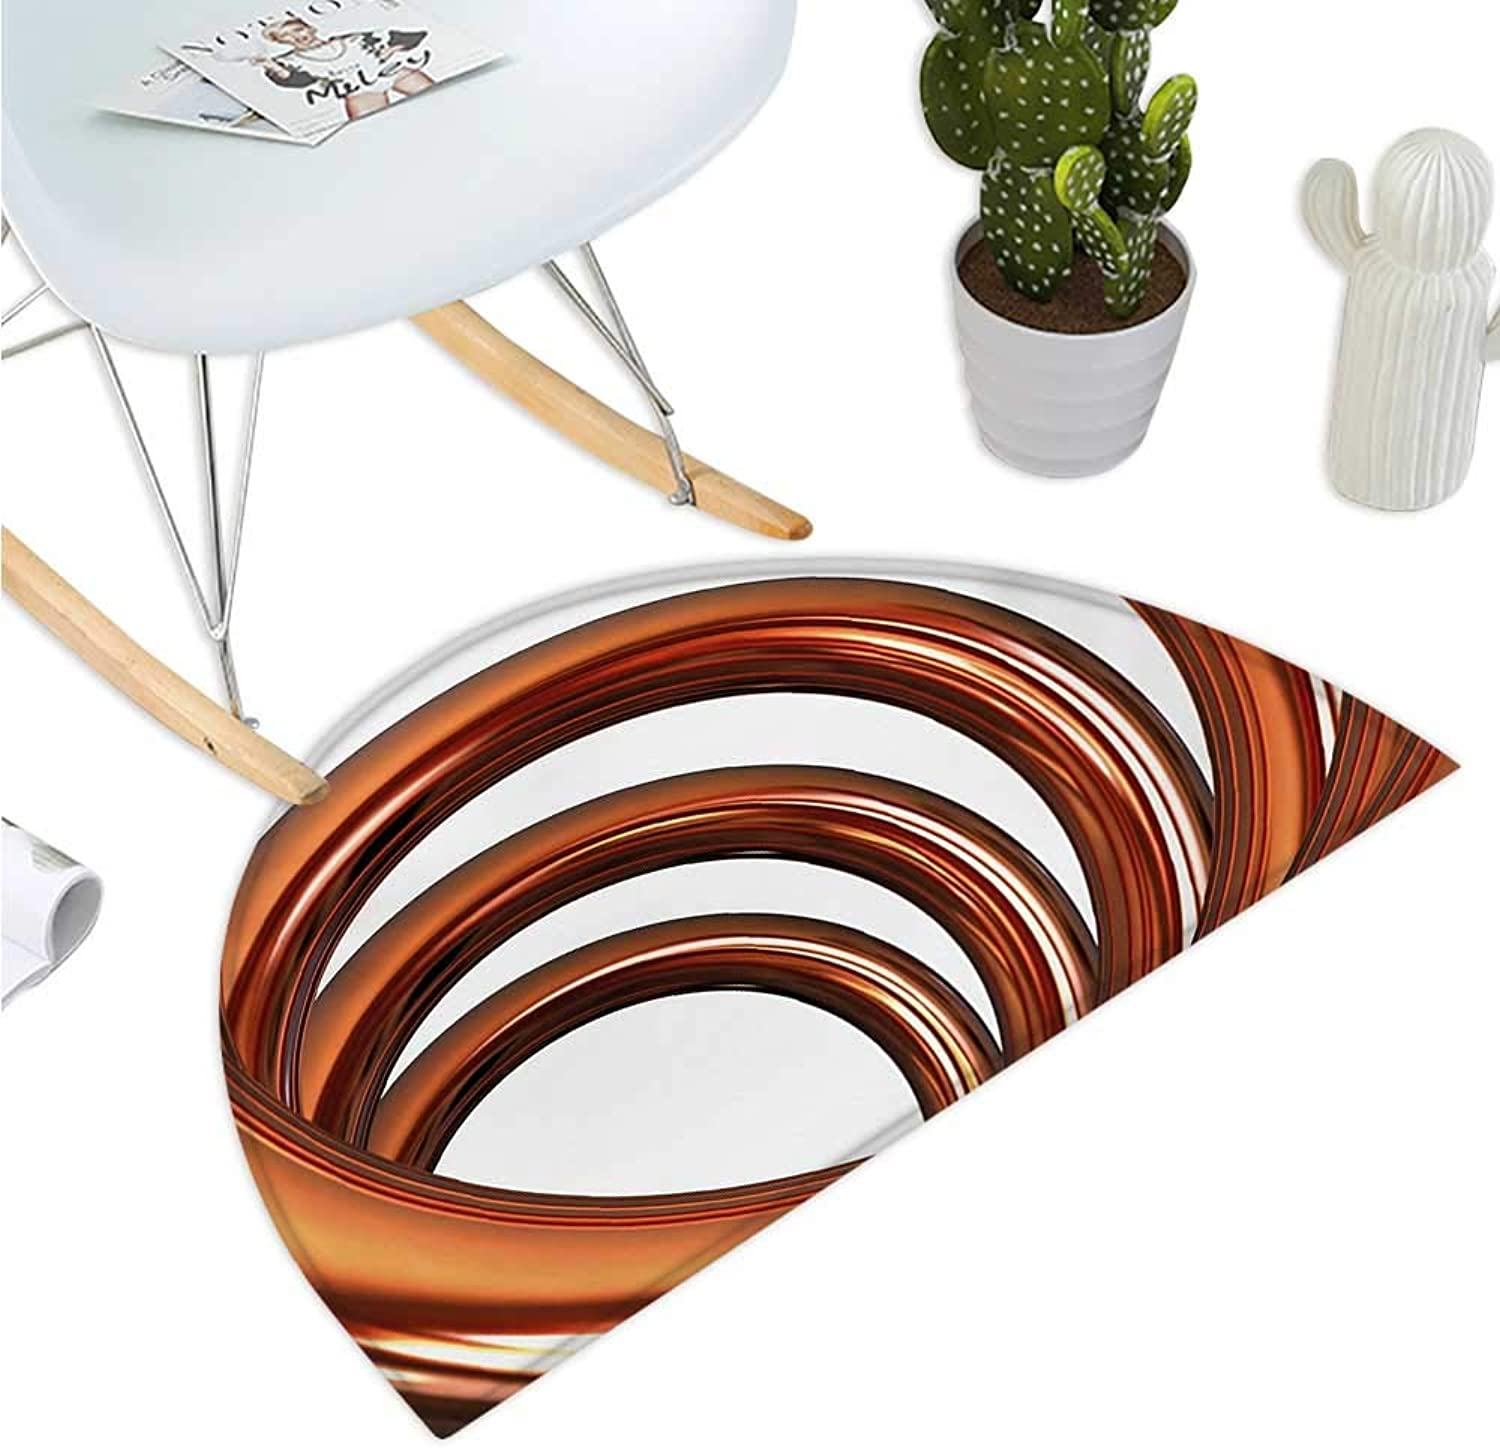 Abstract Semicircular Cushion Helix Coil Curved Spiral Pipe Swirled Shape on White Backdrop Print Halfmoon doormats H 35.4  xD 53.1  Dark orange and White